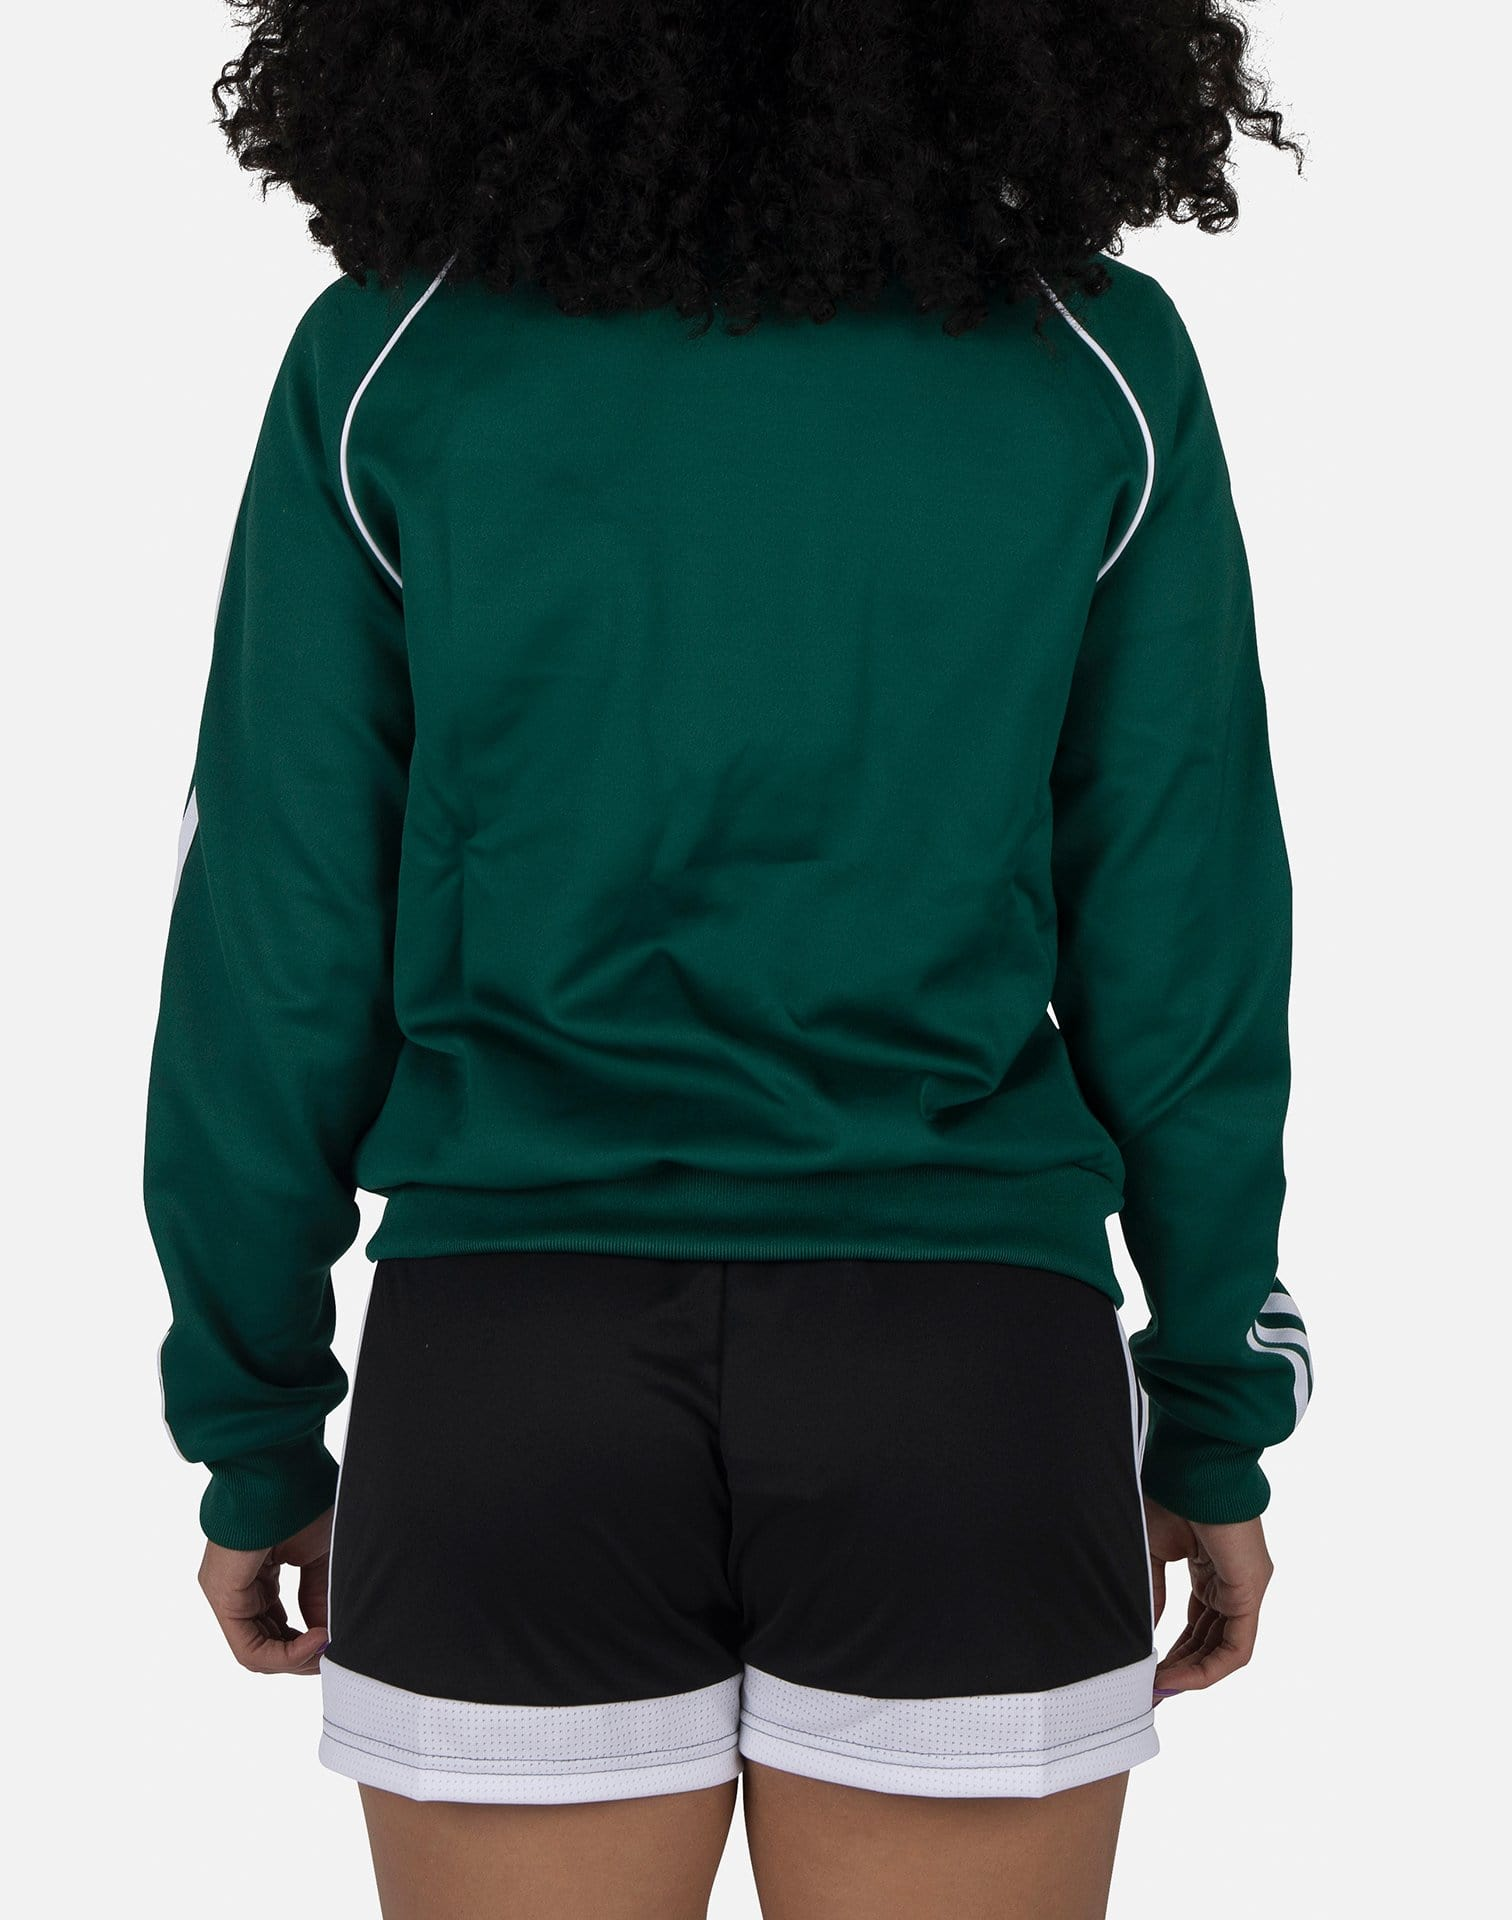 Adidas Women's Superstar Track Jacket